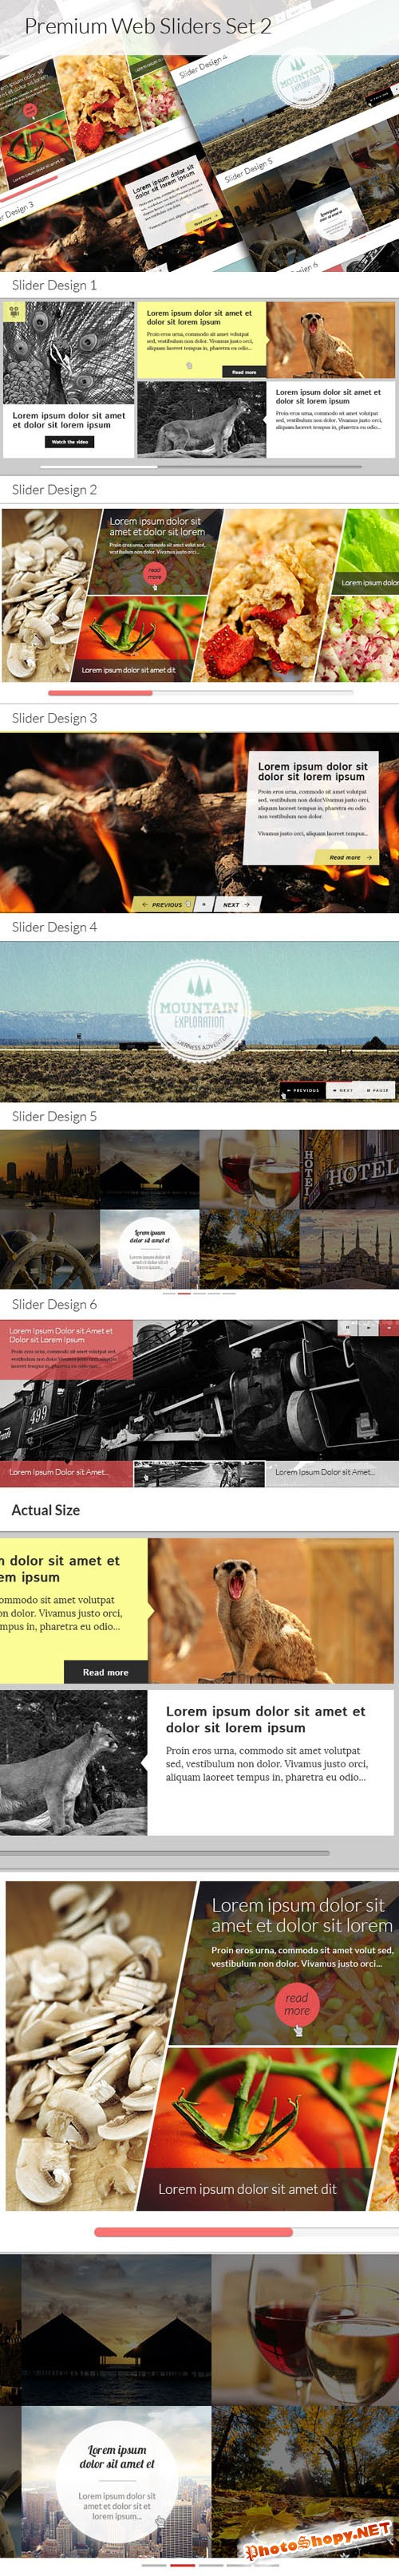 Designtnt - Premium Web Sliders Set 2